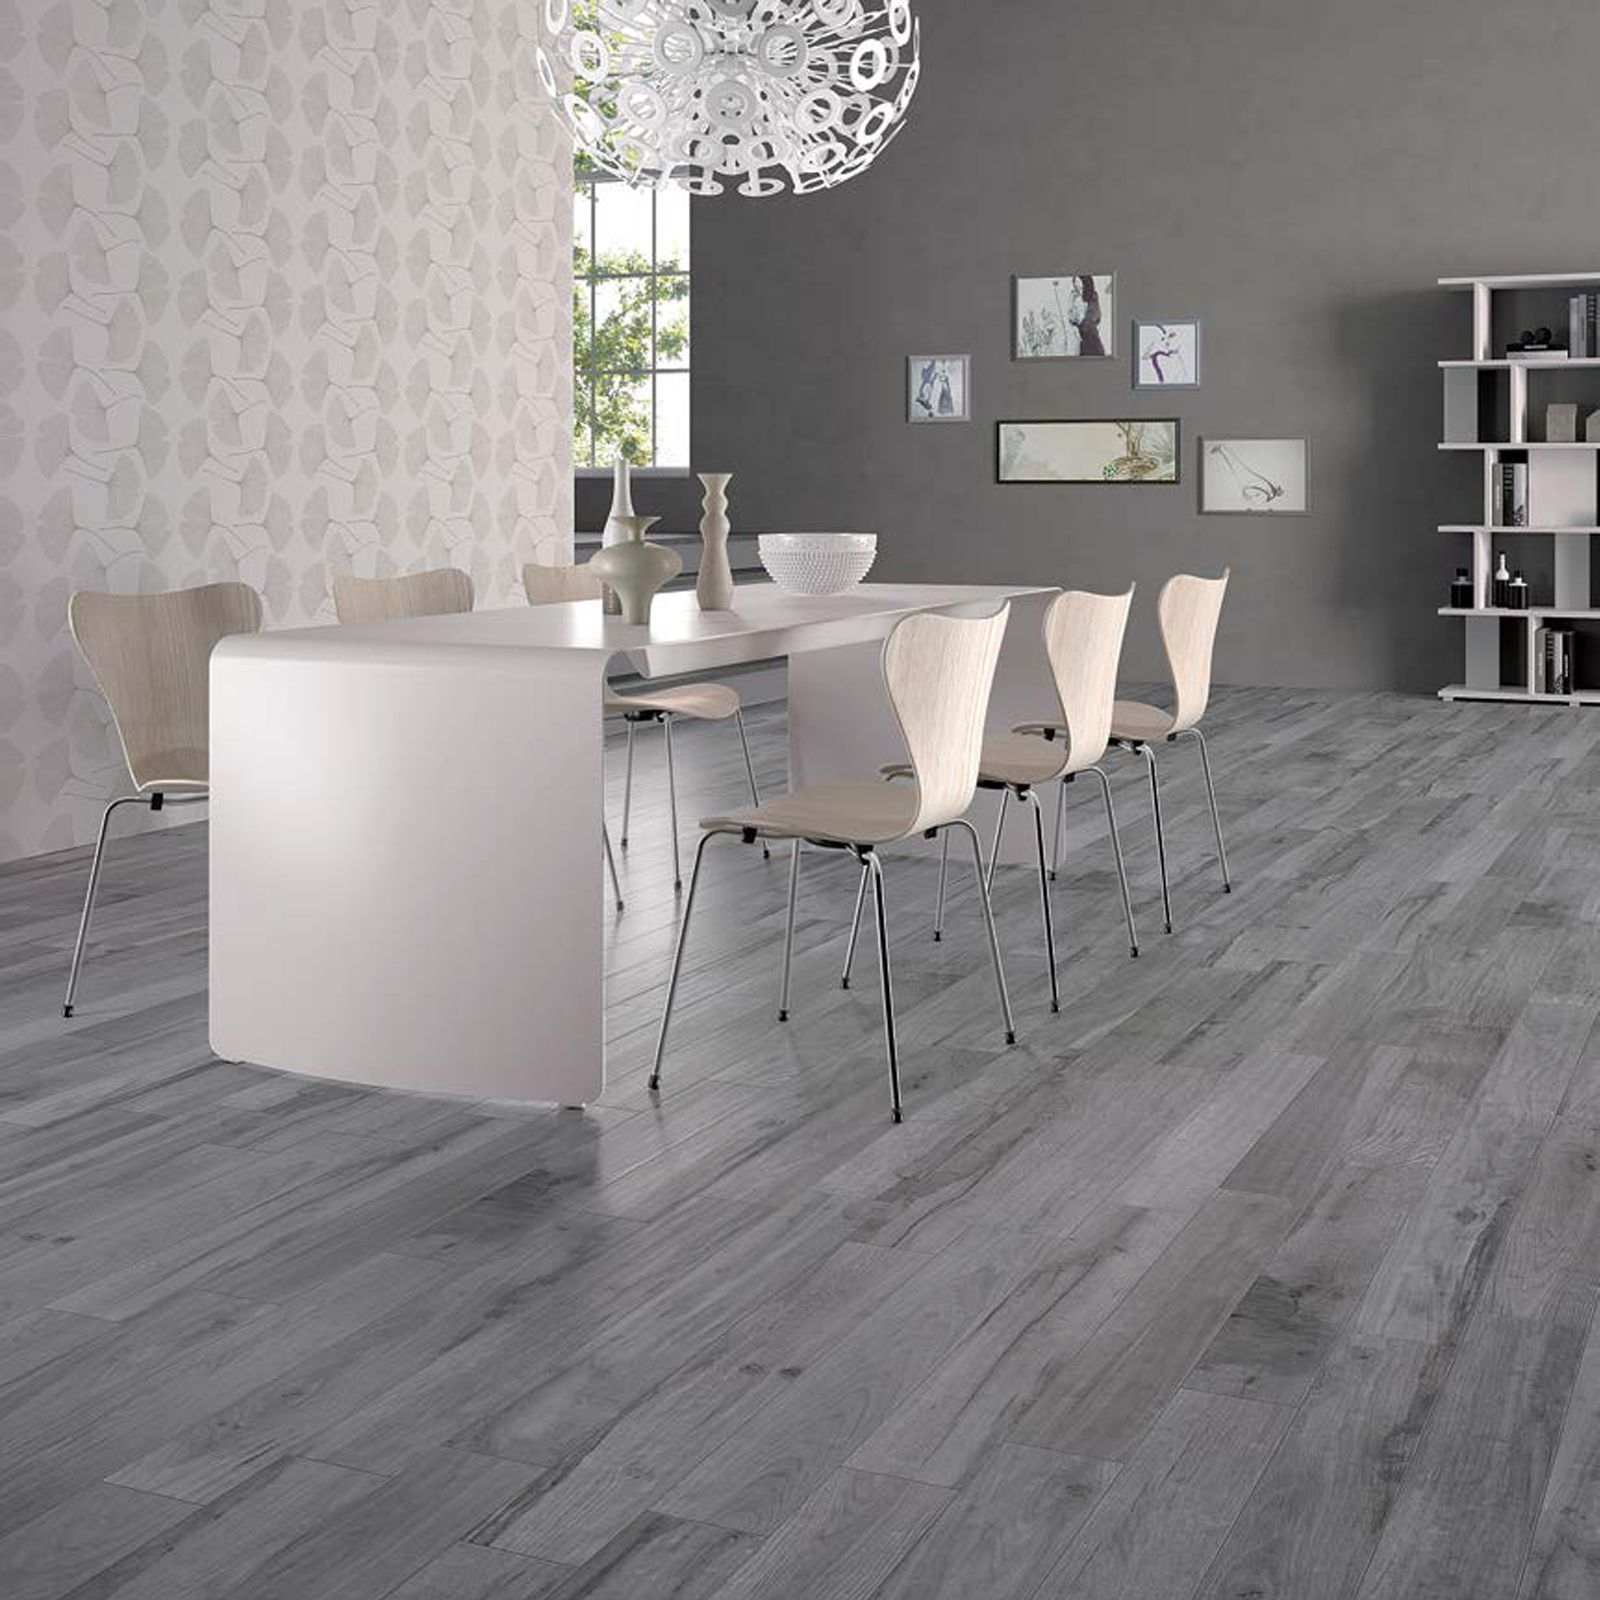 Modern Dining Area With Tiles From Soleras Collection By Abk House Flooring Gray Wood Tile Flooring Wall And Floor Tiles